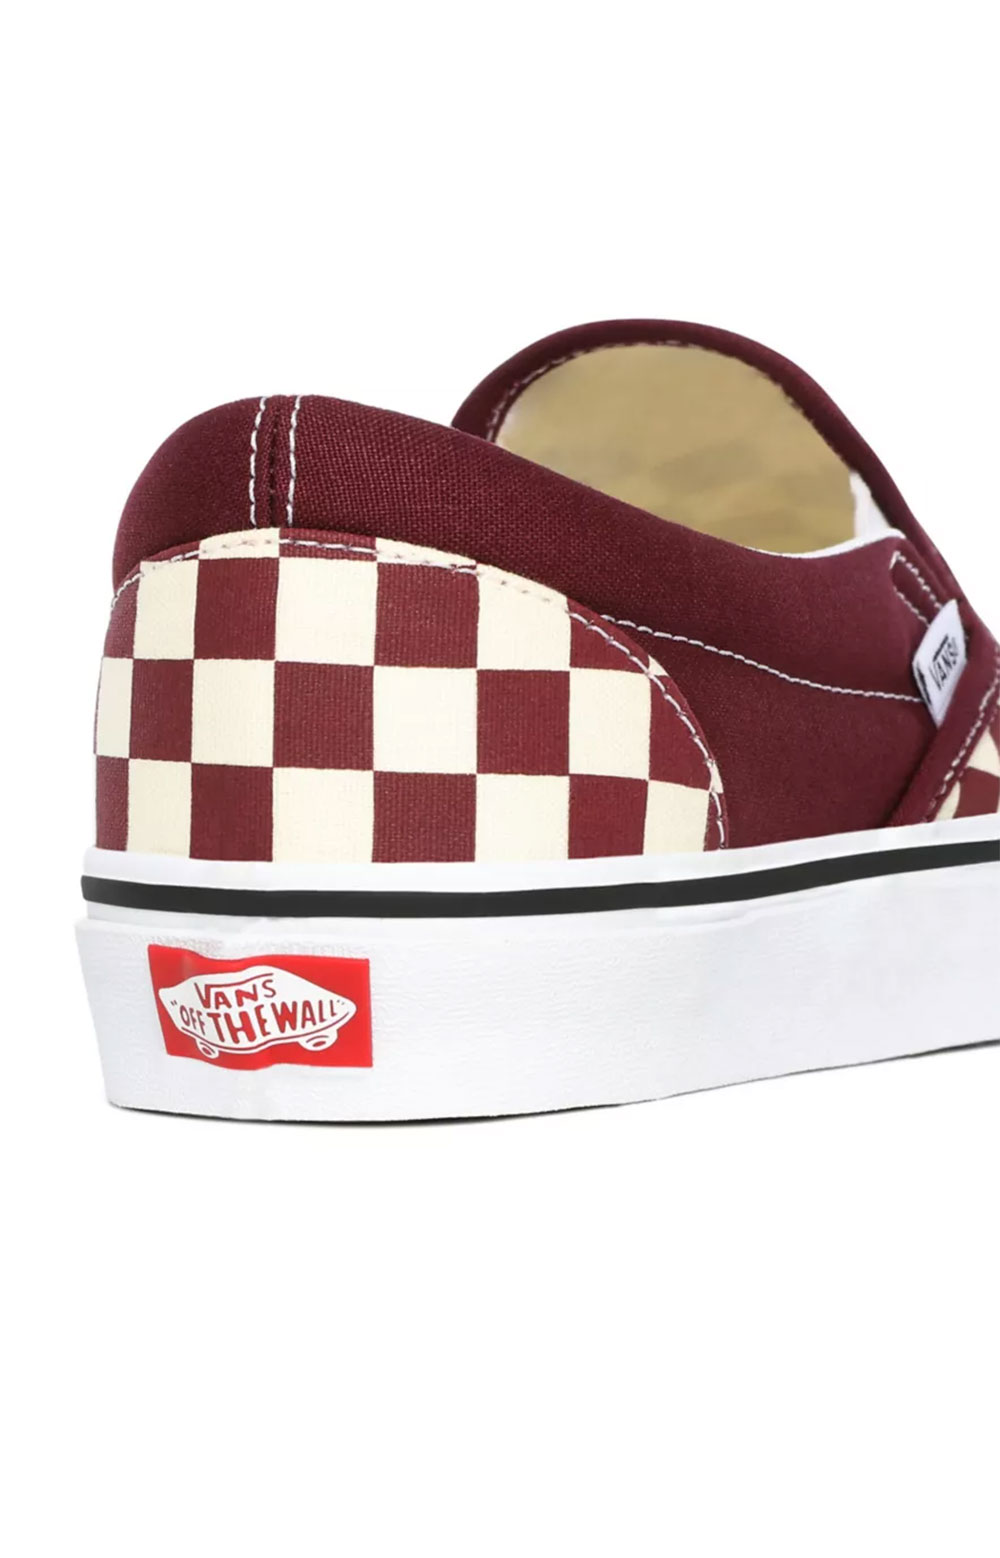 (BV3KZO) Checkerboard Classic Slip-On Shoes- Port Royale/True White  4